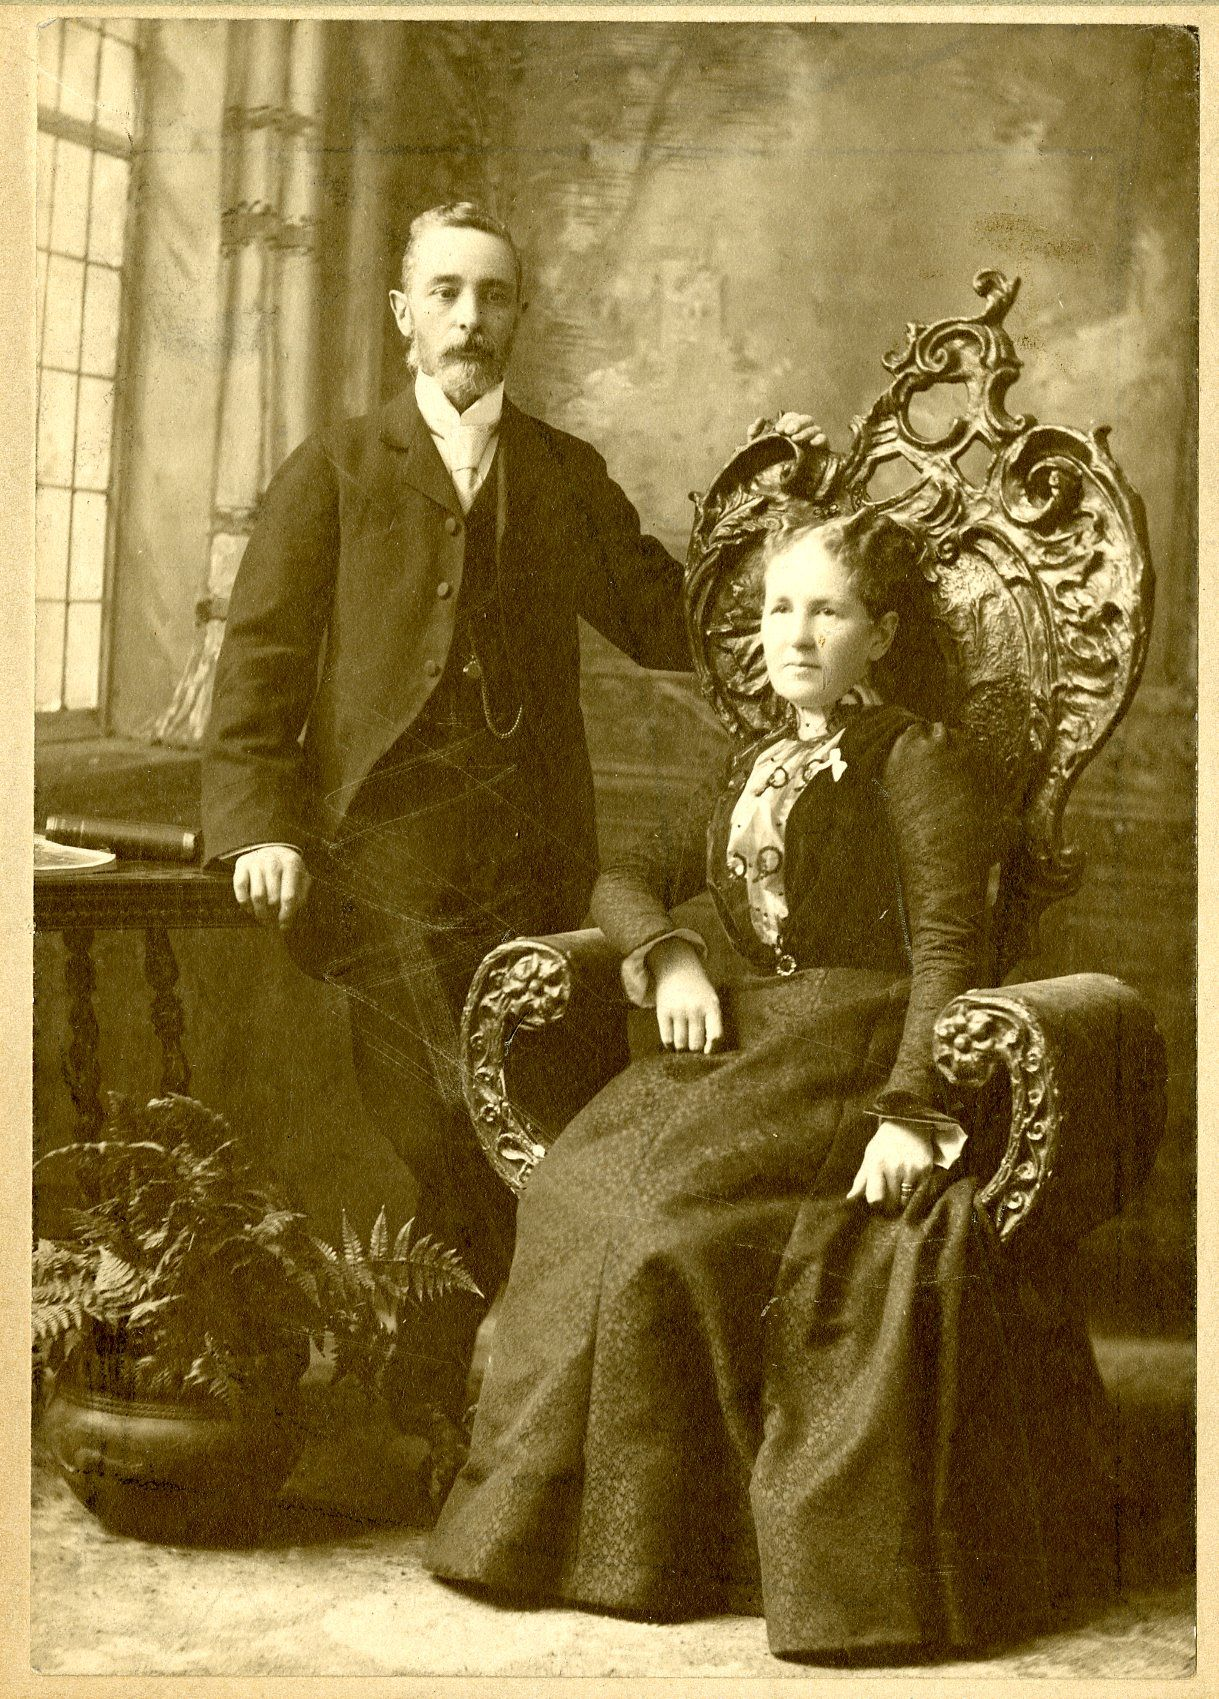 Mary sitting in an ornate chair while Andrew stands beside her.